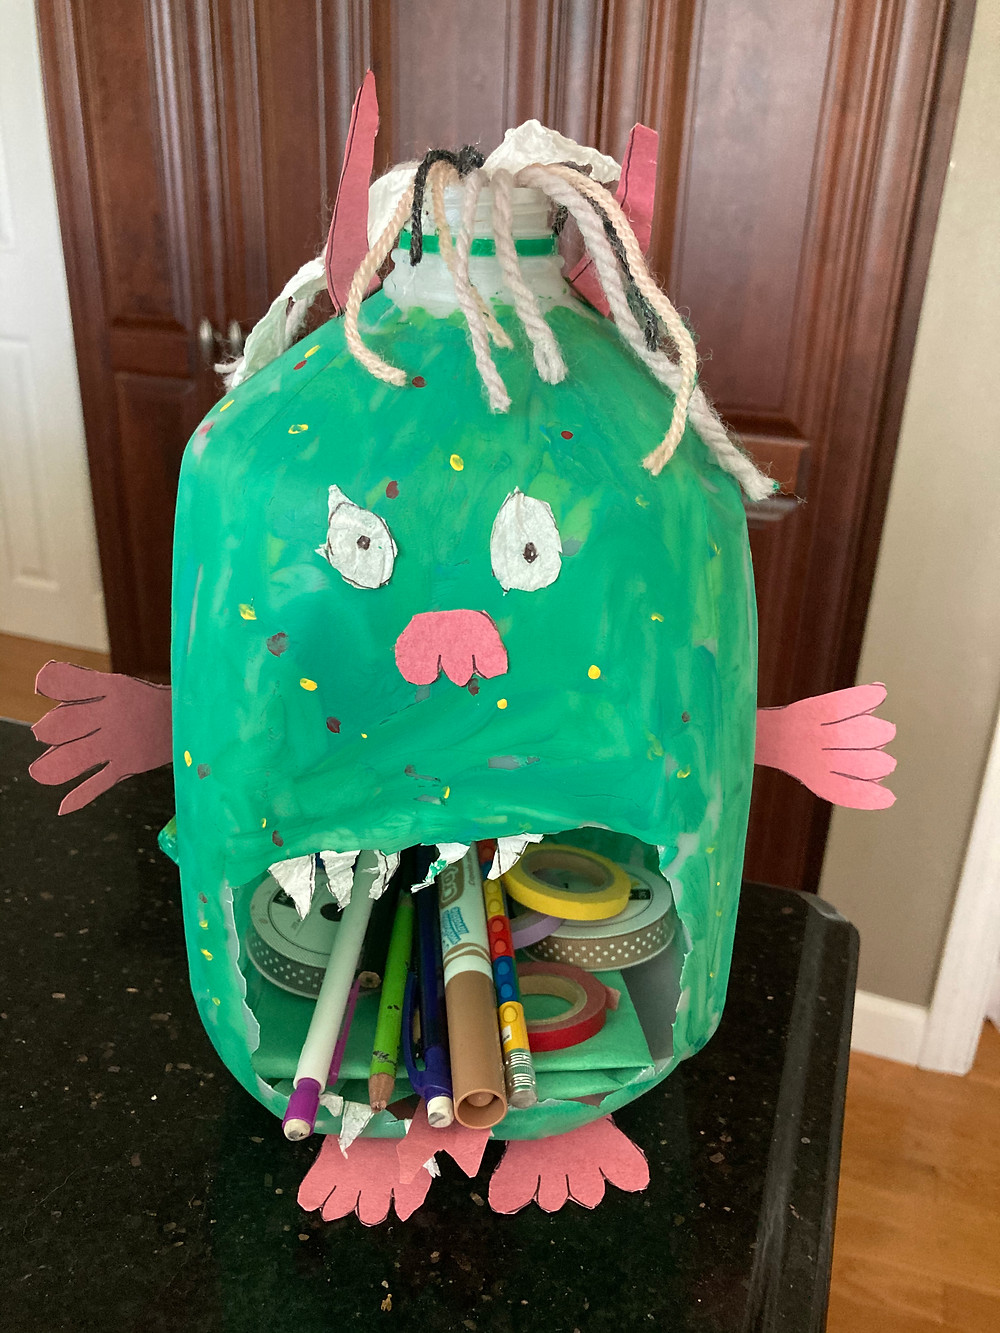 Plastic milk jug painted green with large eyes and mouth cut out to hold school supplies.